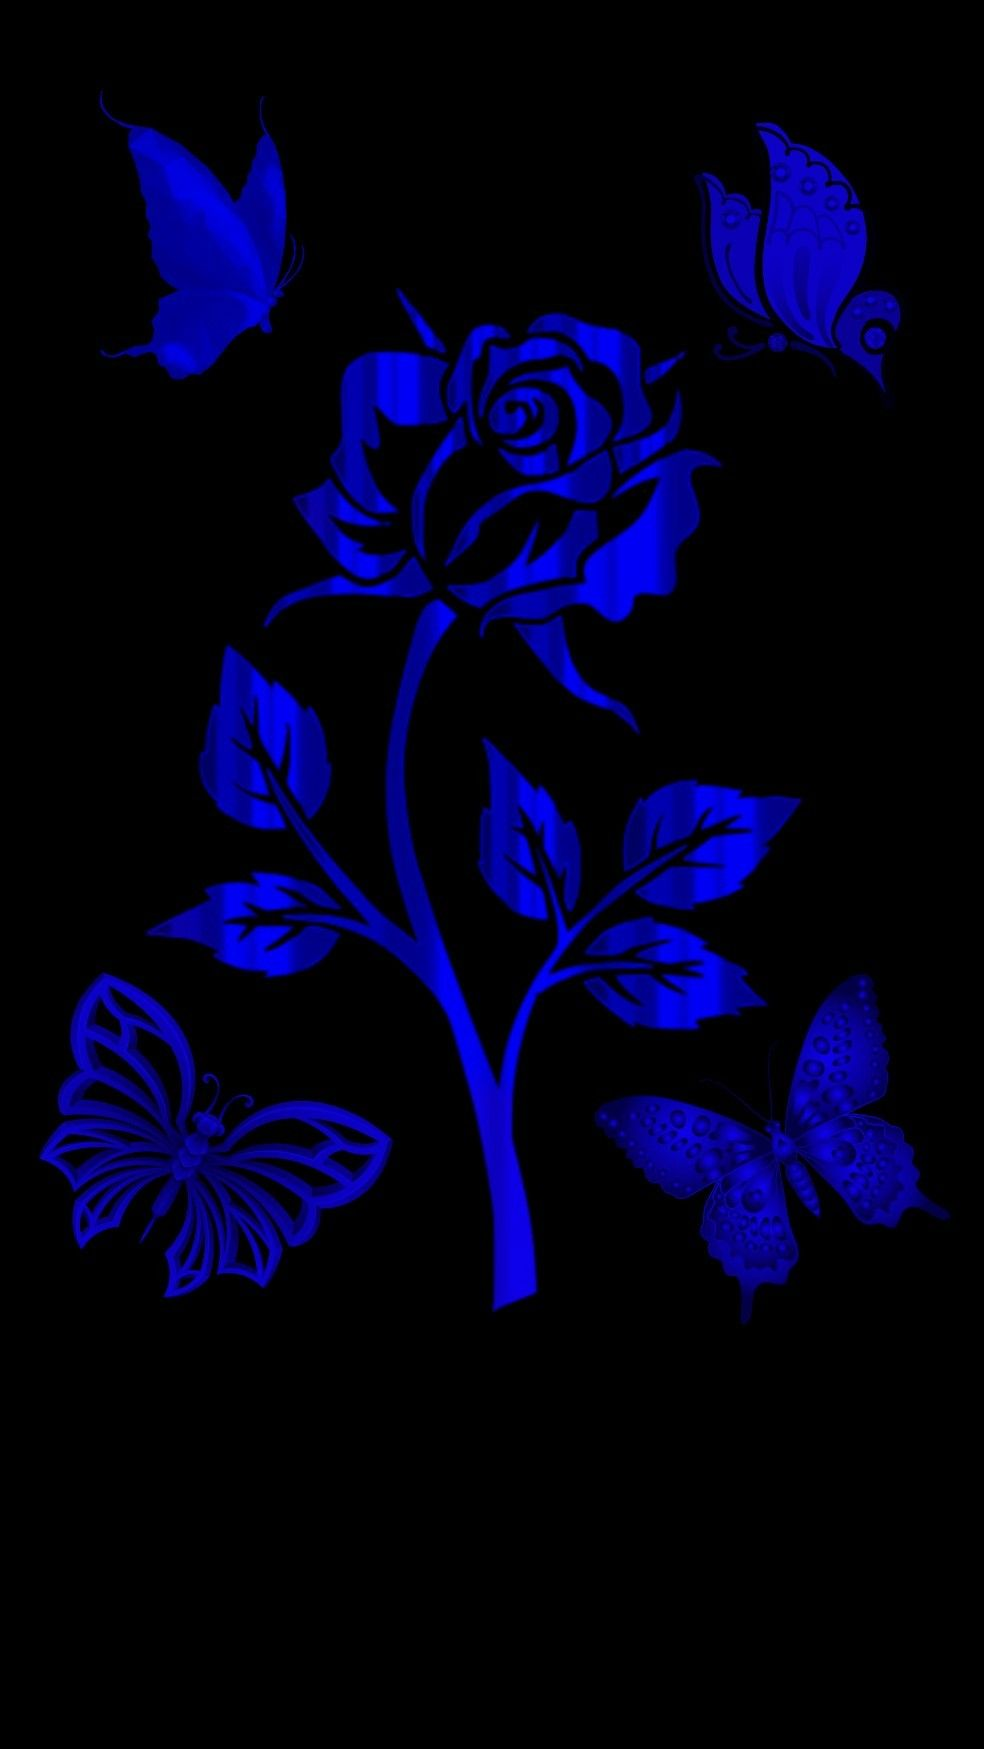 Blue Wallpaper Blue Roses Wallpaper Beautiful Wallpapers Backgrounds Black And Blue Wallpaper